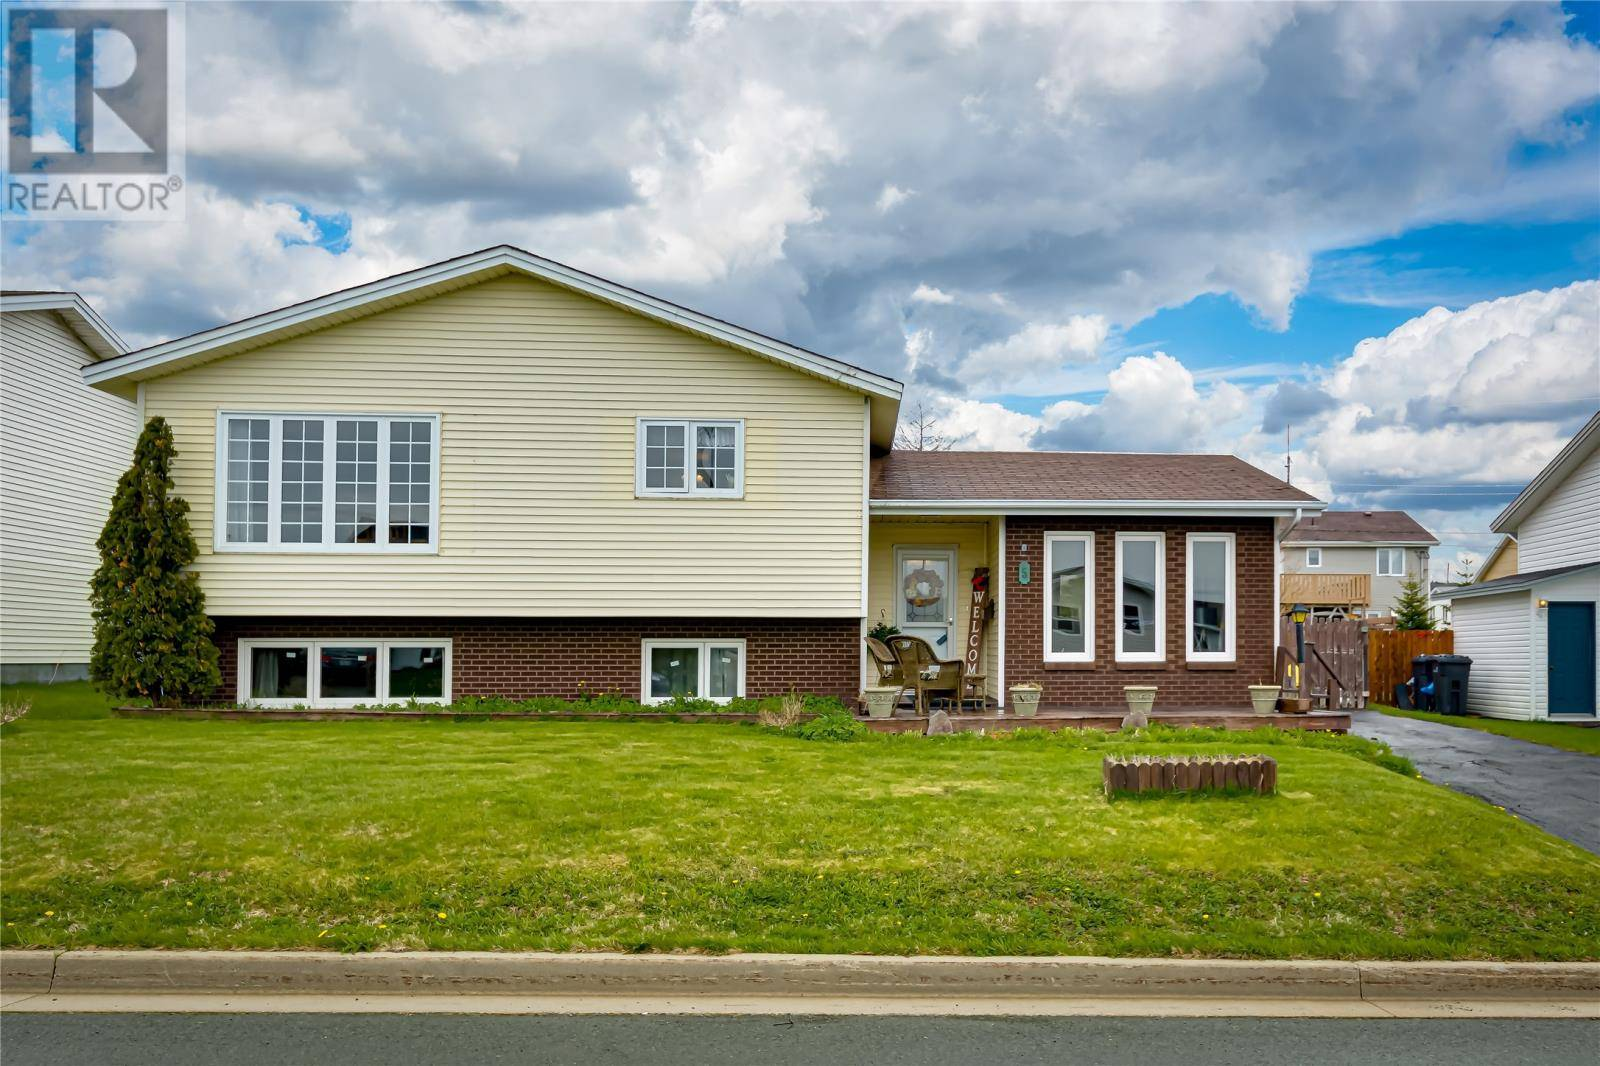 House for sale at 5 Aspenwood Pl Mount Pearl Newfoundland - MLS: 1197358